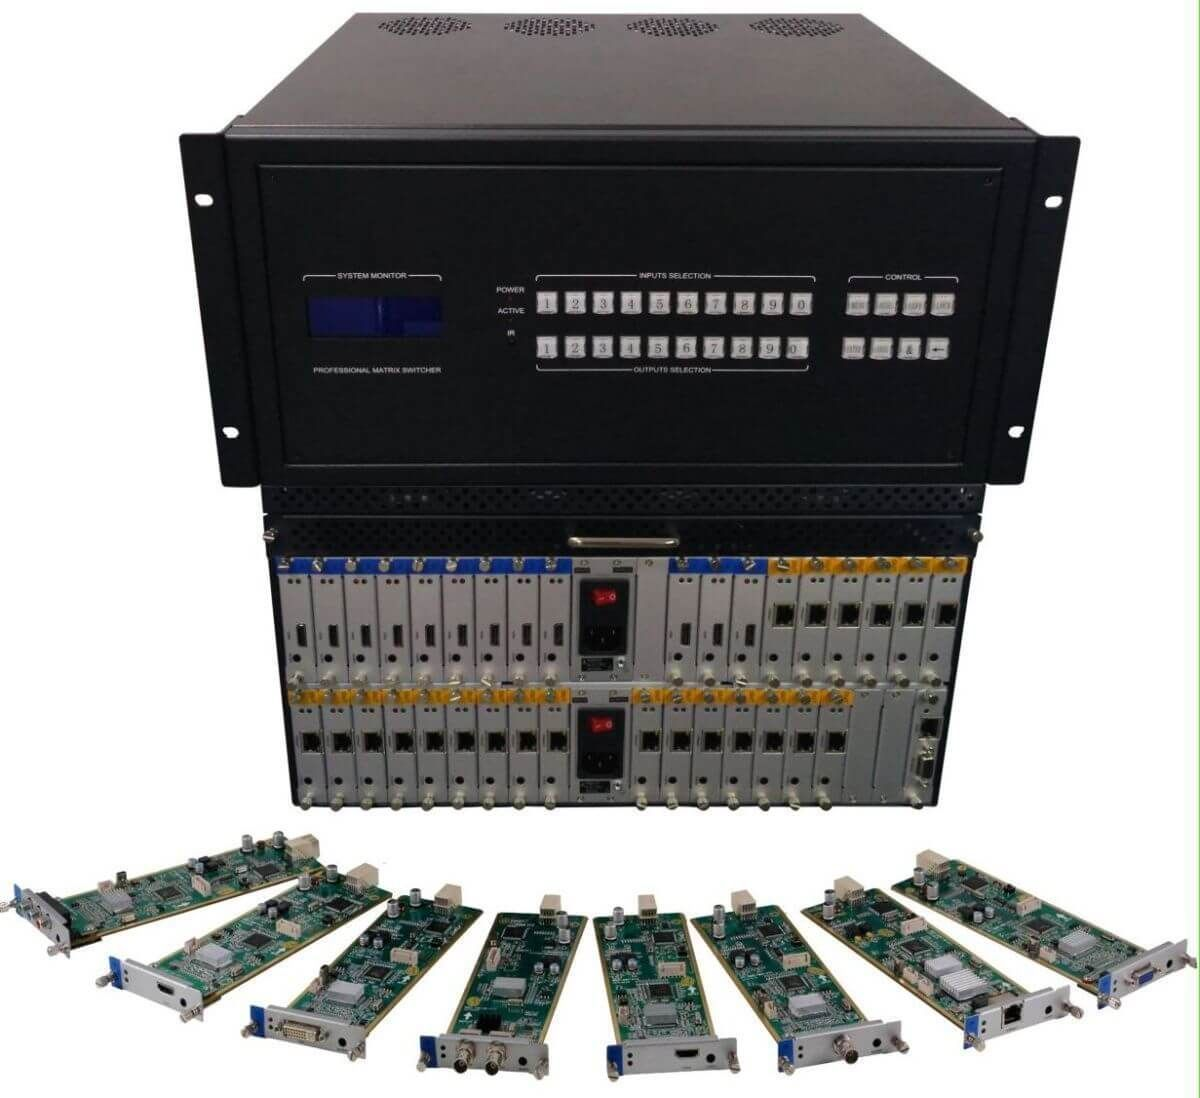 30x32 HDMI Matrix Switcher with Video Wall Processor